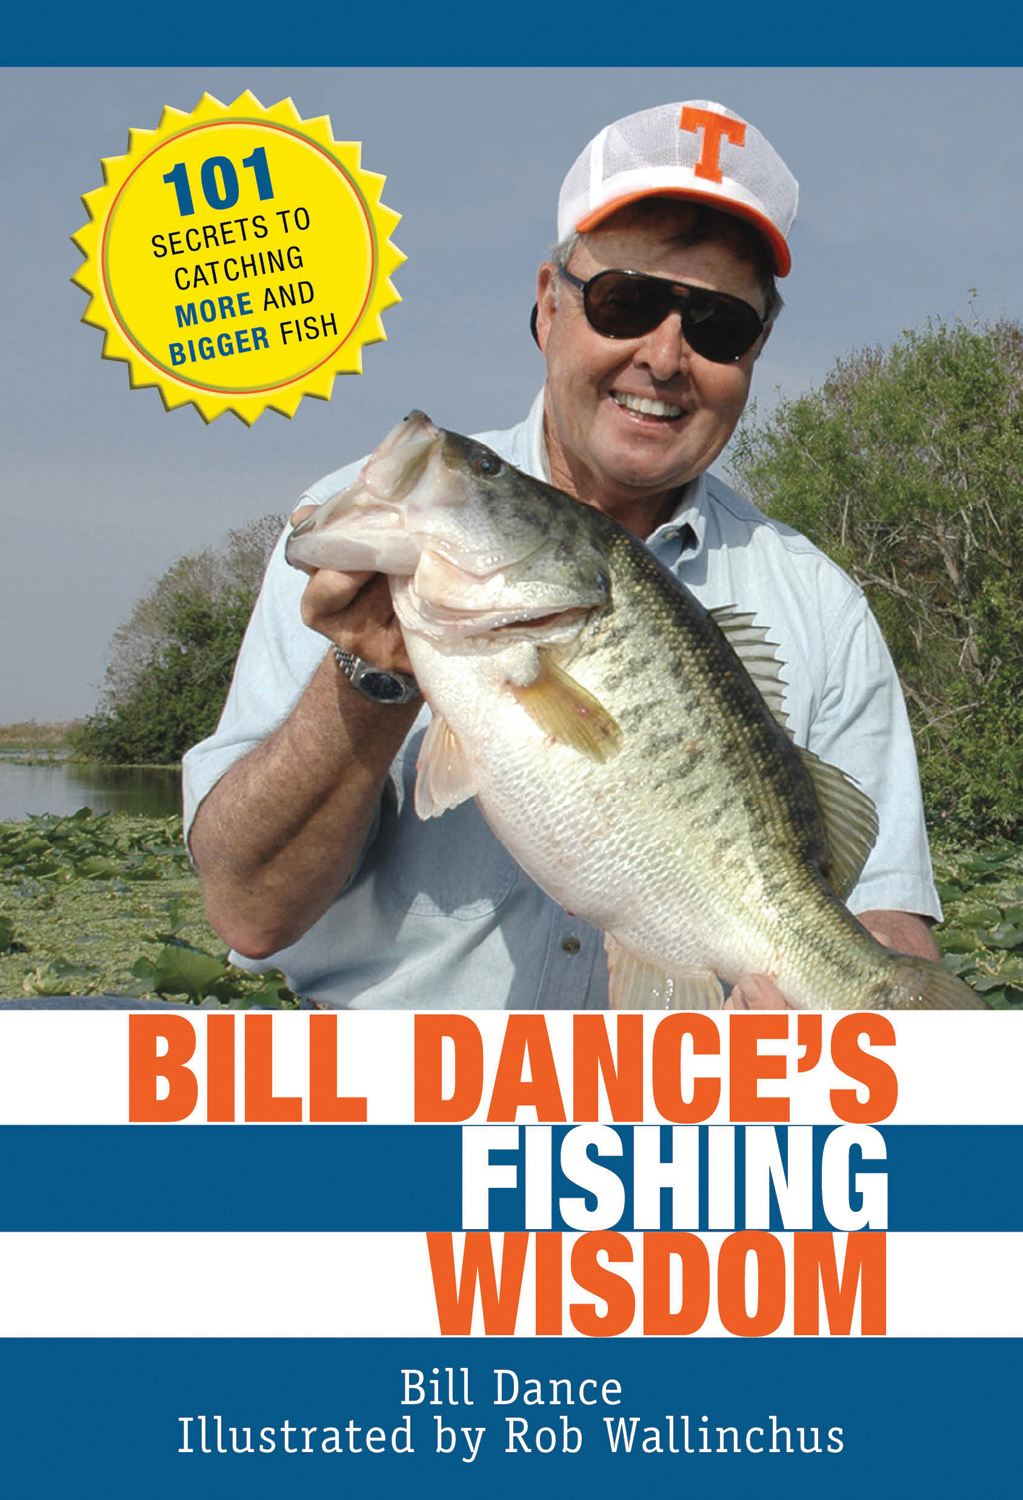 Bill Dance's Fishing Wisdom